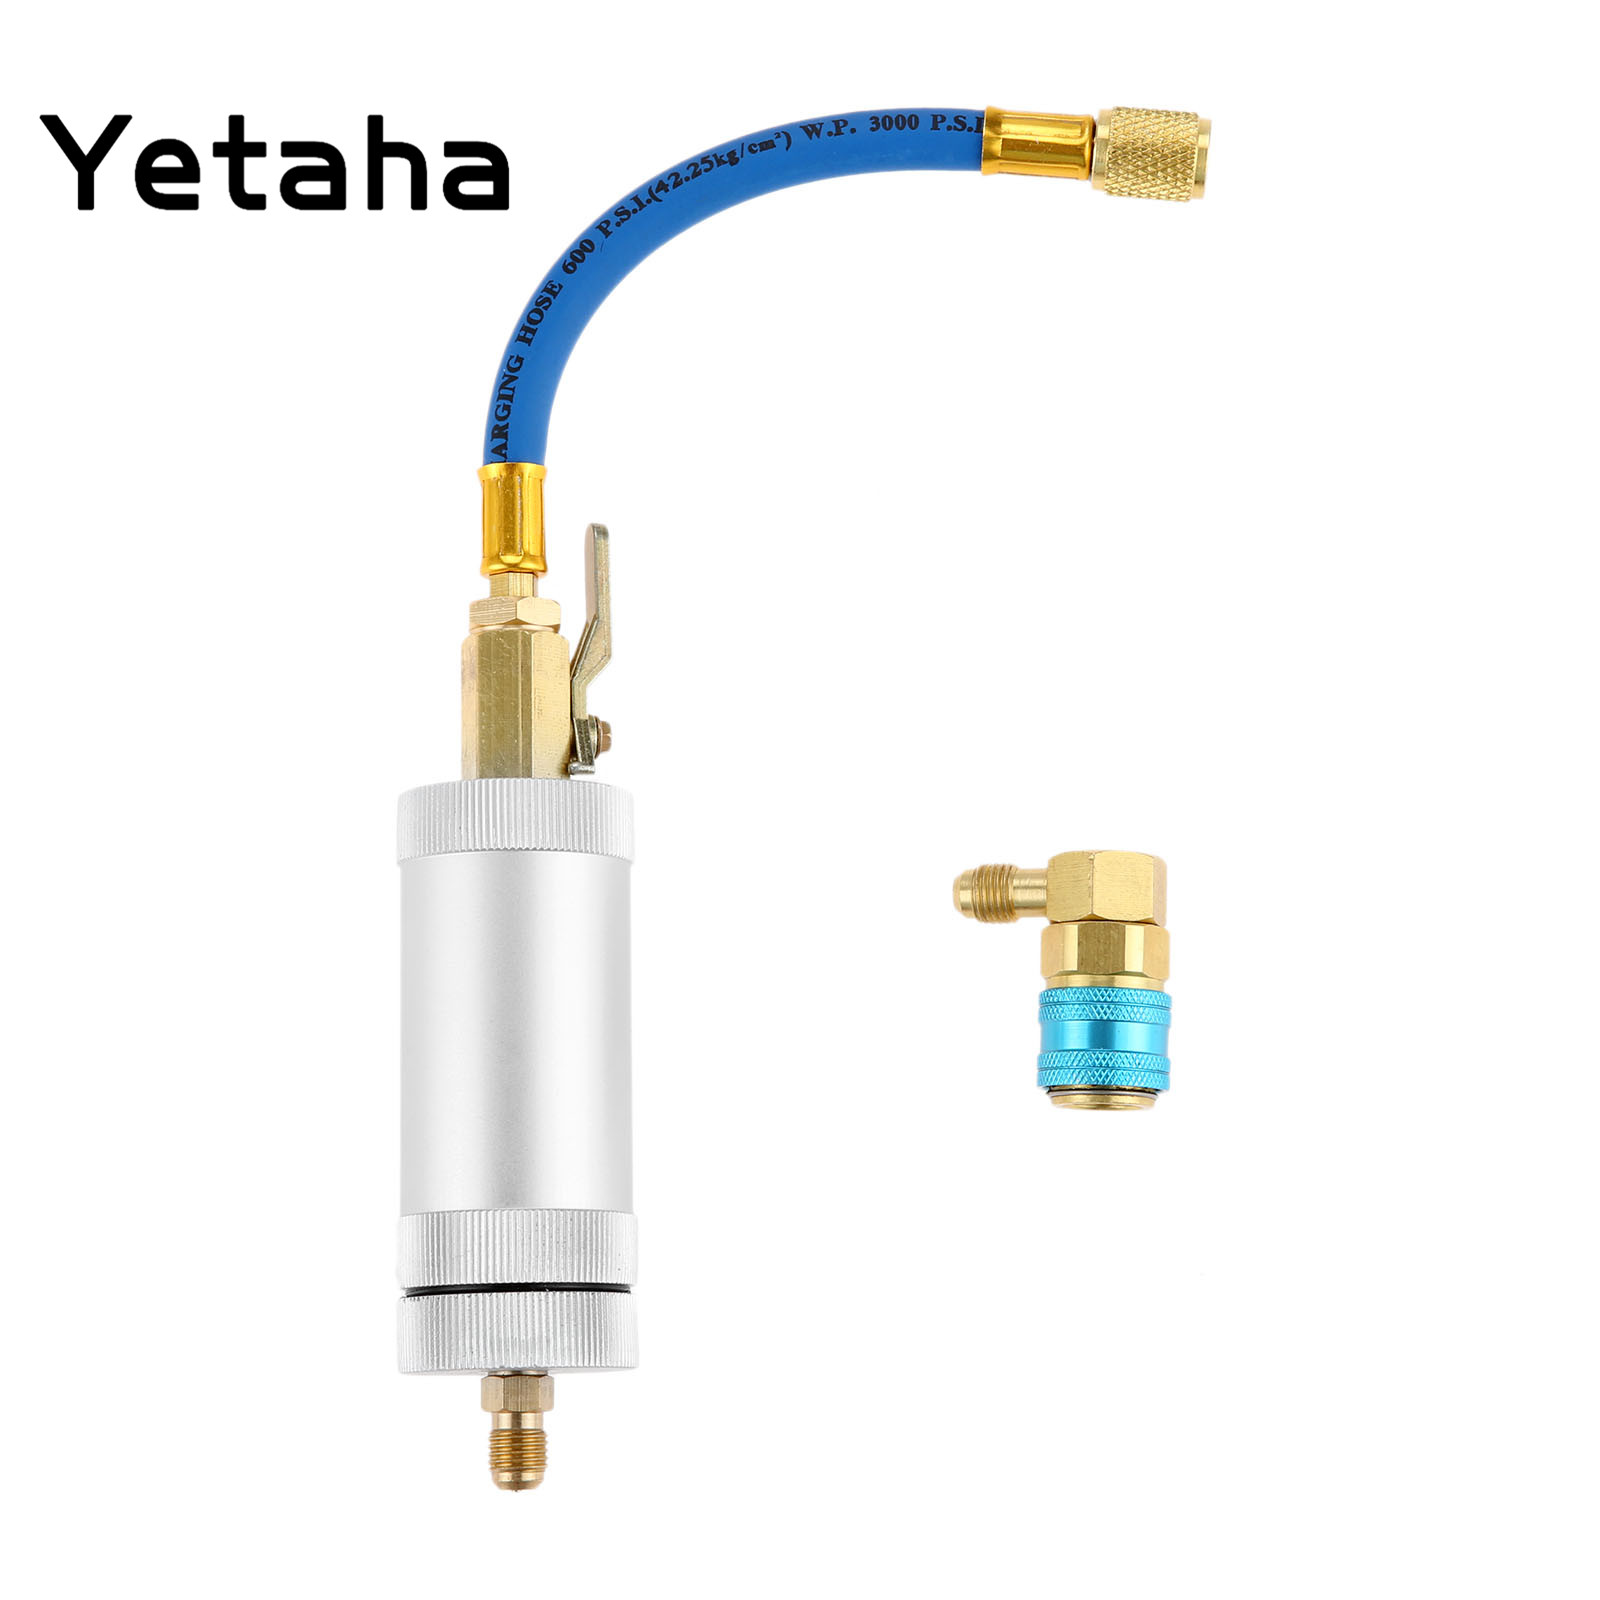 Yetaha Air Conditioning A/C Oil Injector With Coupler Adapter R134A R12 R22 Injection Tool 2OZ 1/4 Liquid Coolant Filler Tube car a c oil dye injector low r22 r134a quick coupler adapter kit injection hand turn pump oiler a c oil injector